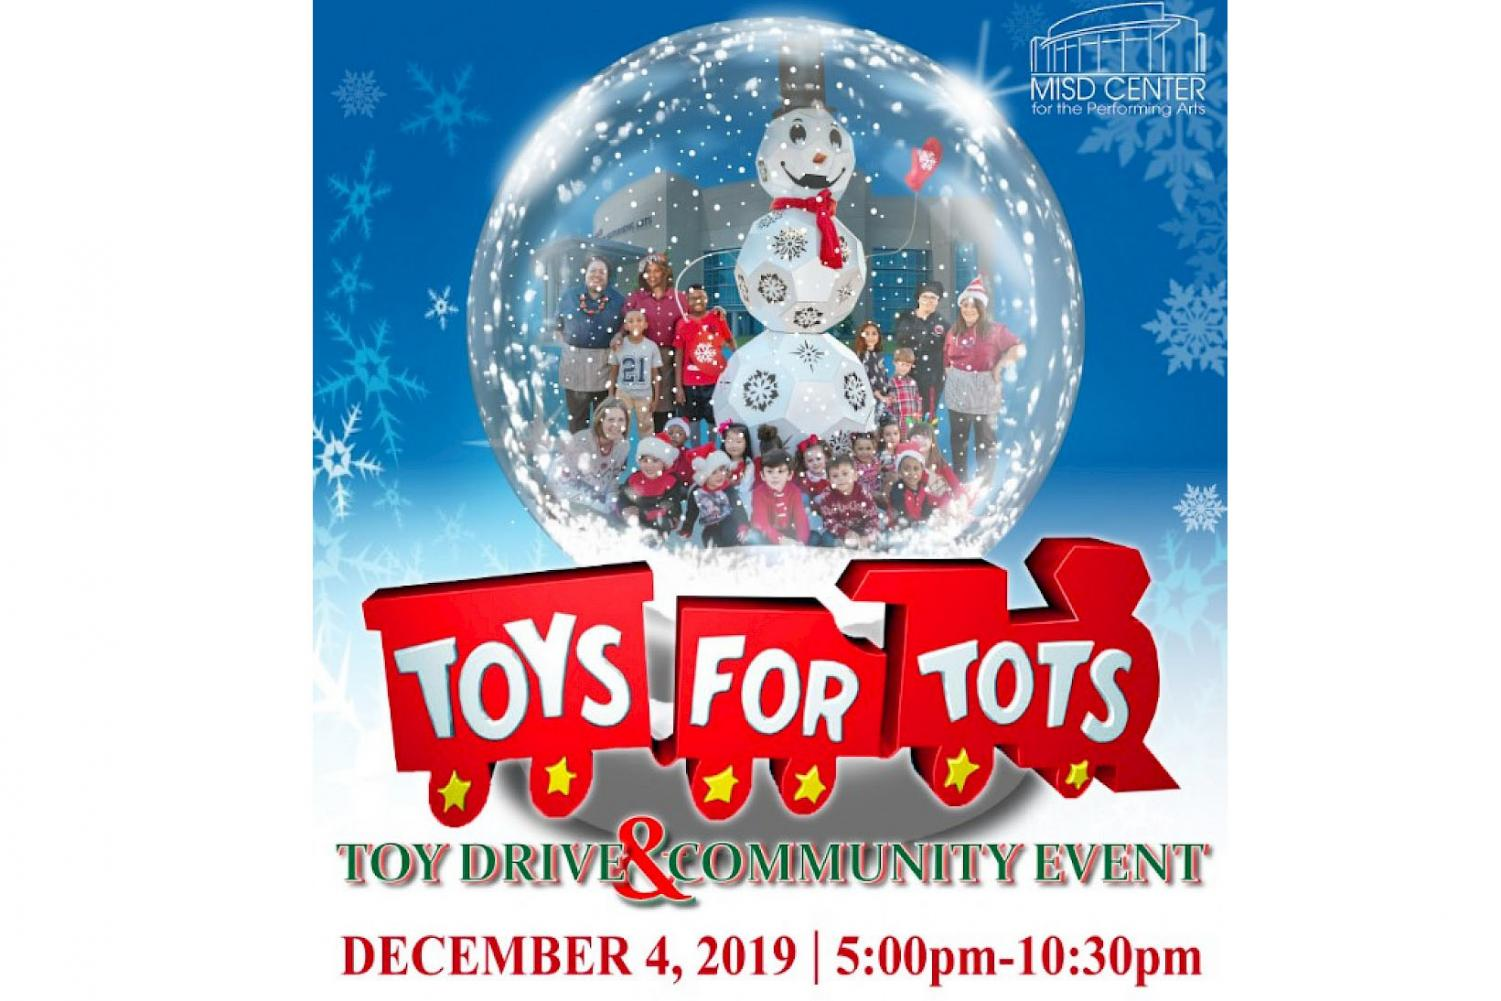 Mansfield will host the annual Toys for Tots toy drive on Dec. 4 at the Center.